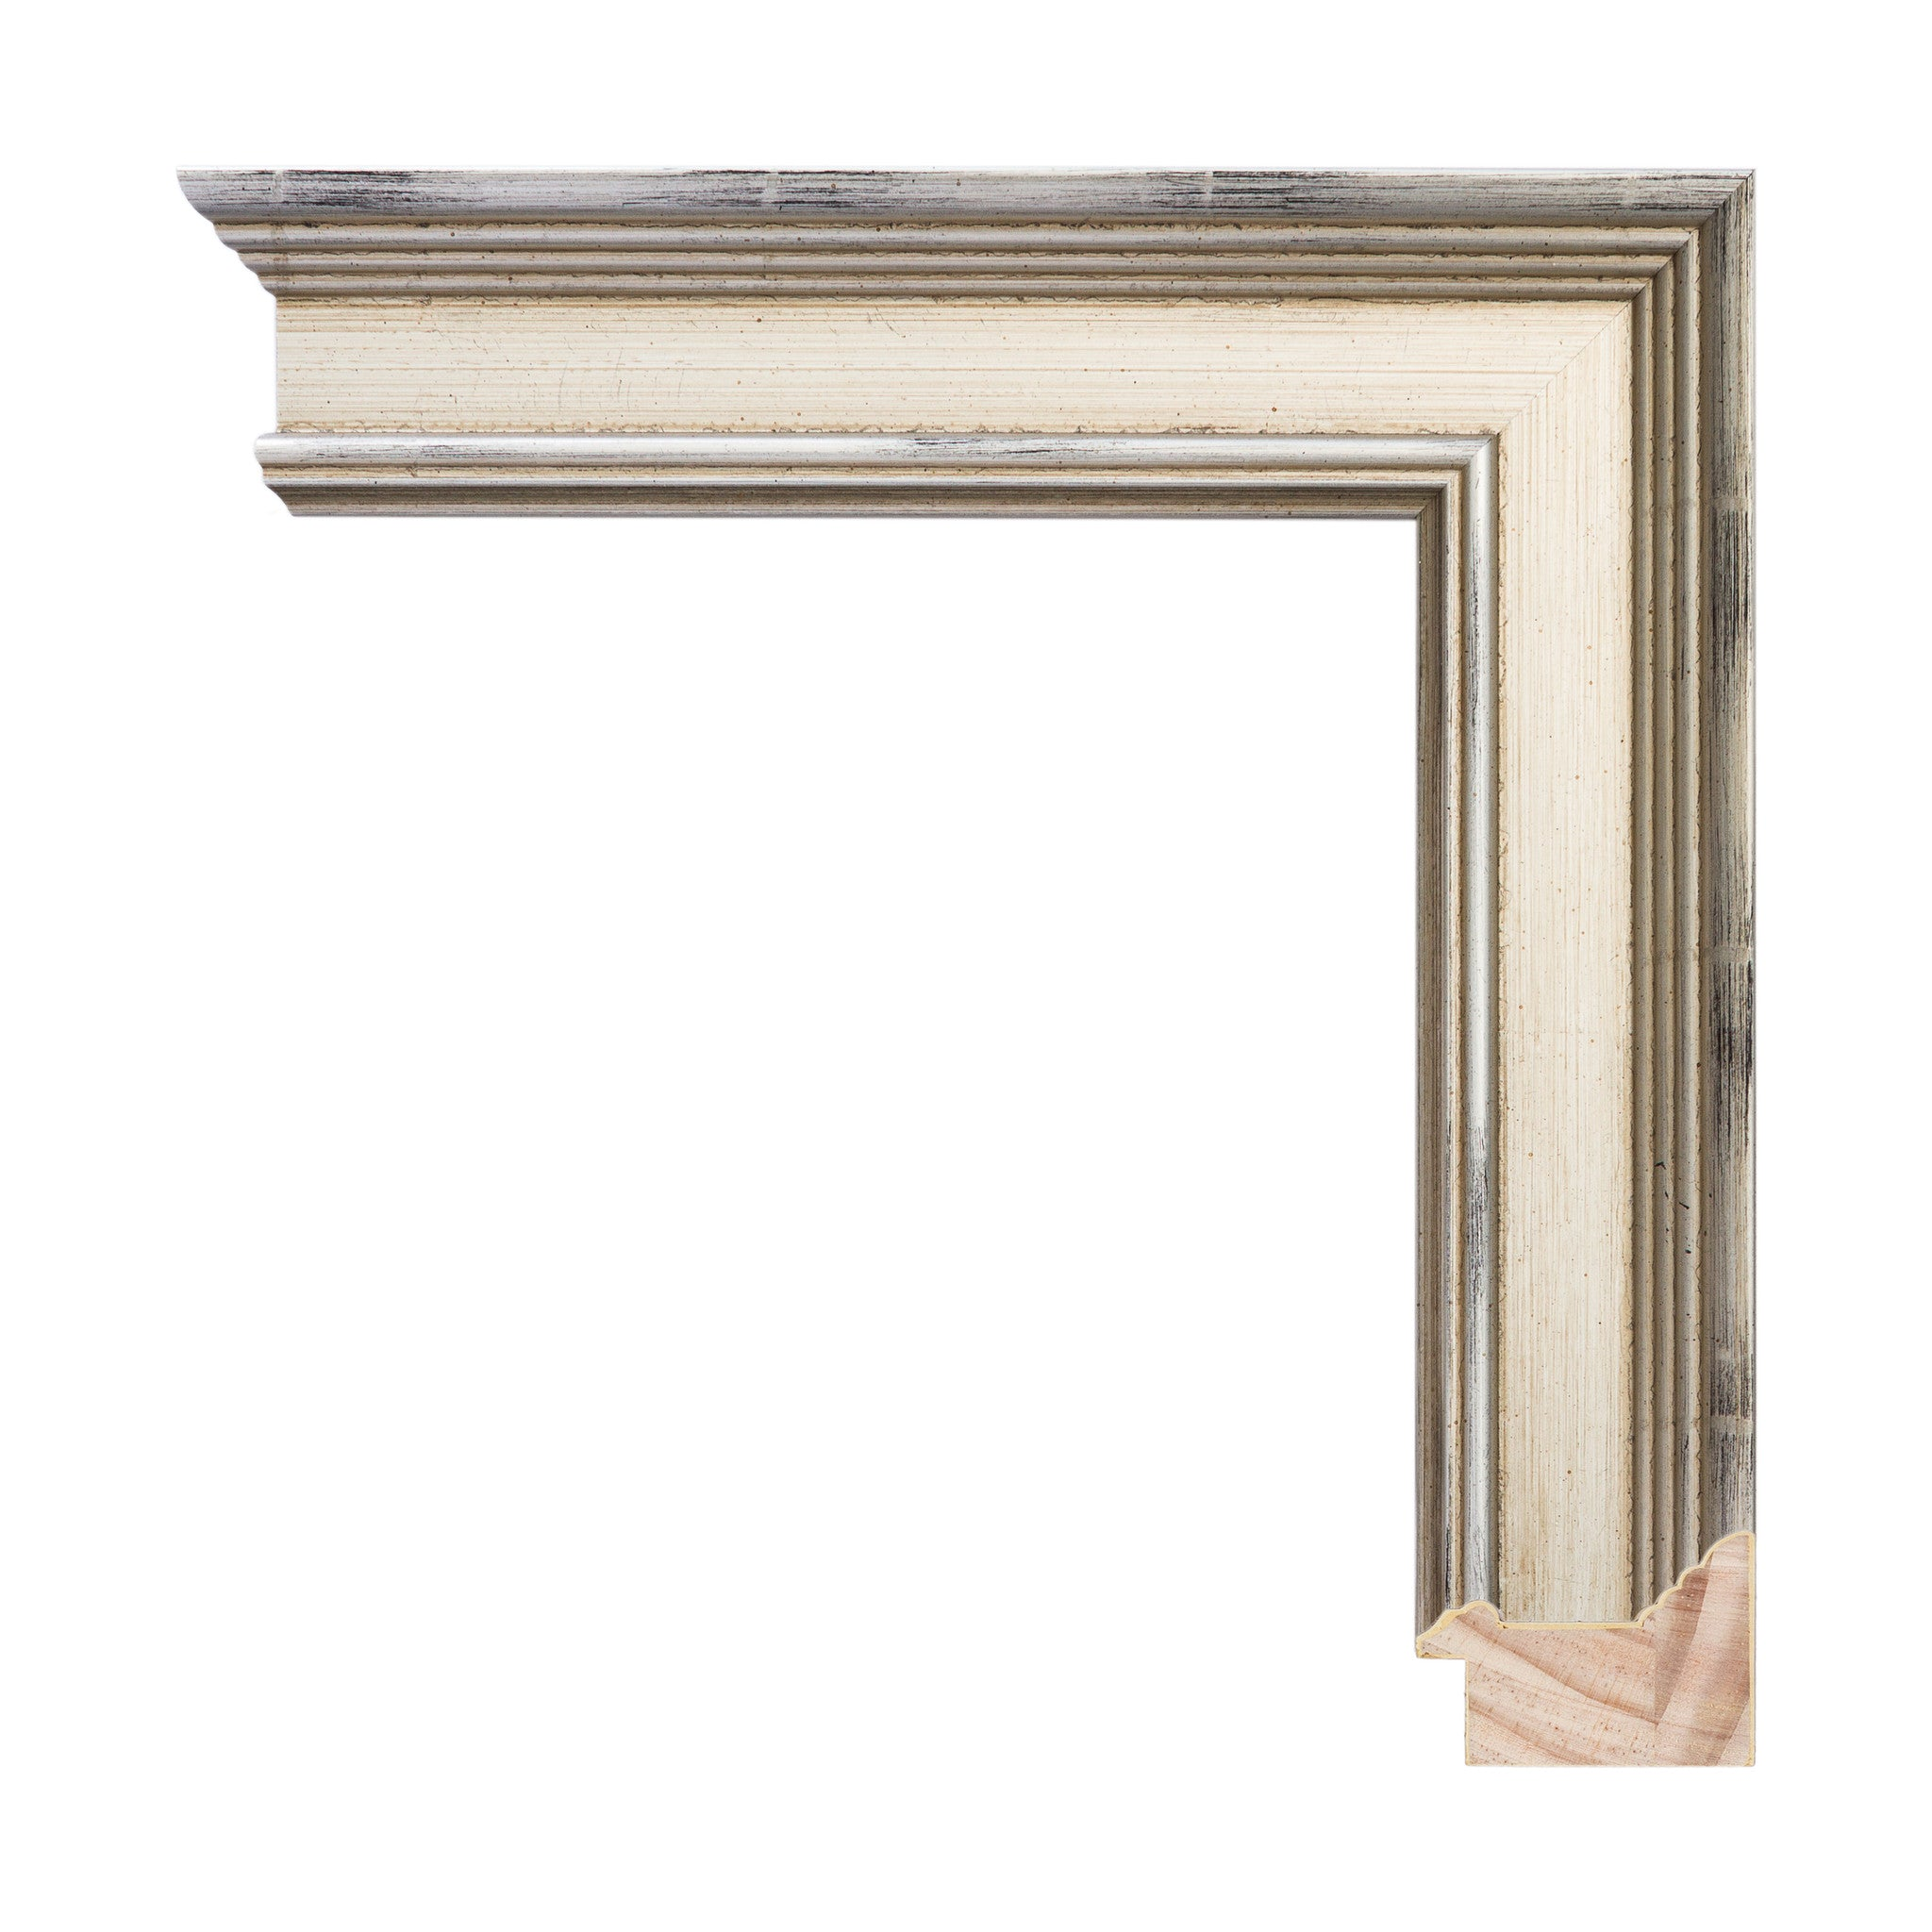 Six Silver Frames - Wholesale Frame Company